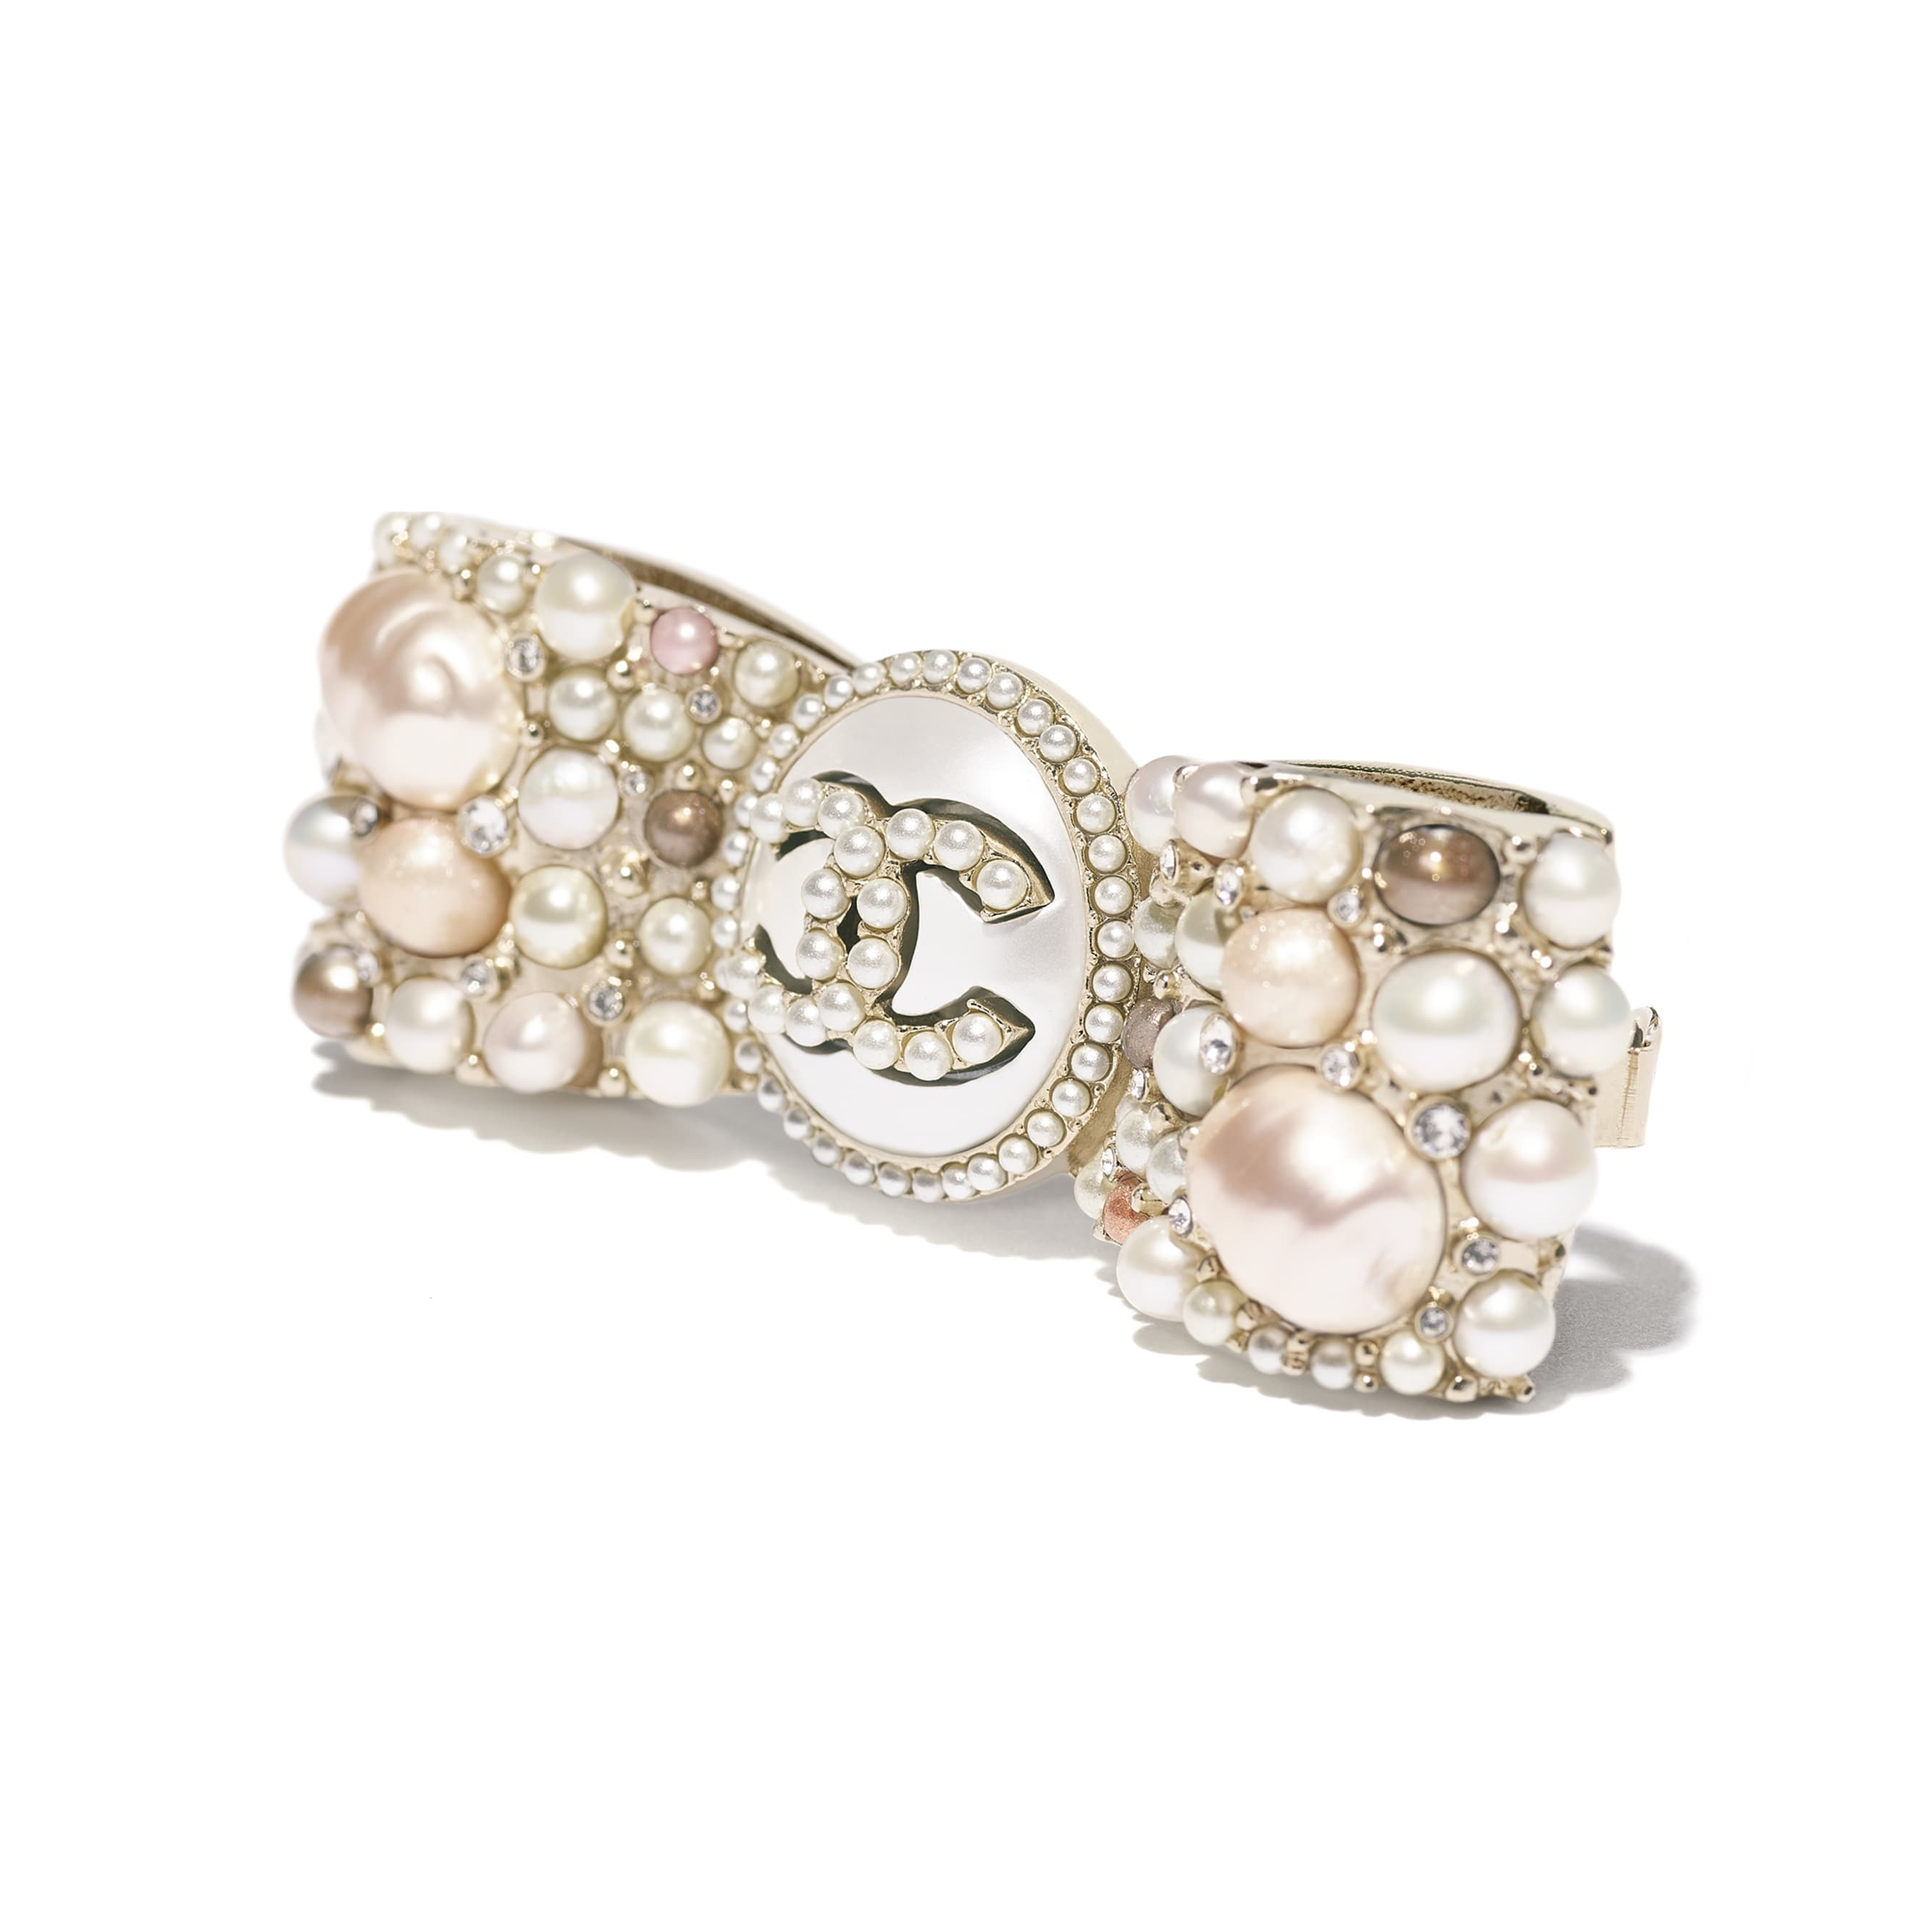 Hair Clip - Gold, Pearly White, Pink & Crystal - Metal, Cultured Fresh Water Pearls, Glass Pearls, Imitation Pearls & Strass - CHANEL - Other view - see standard sized version